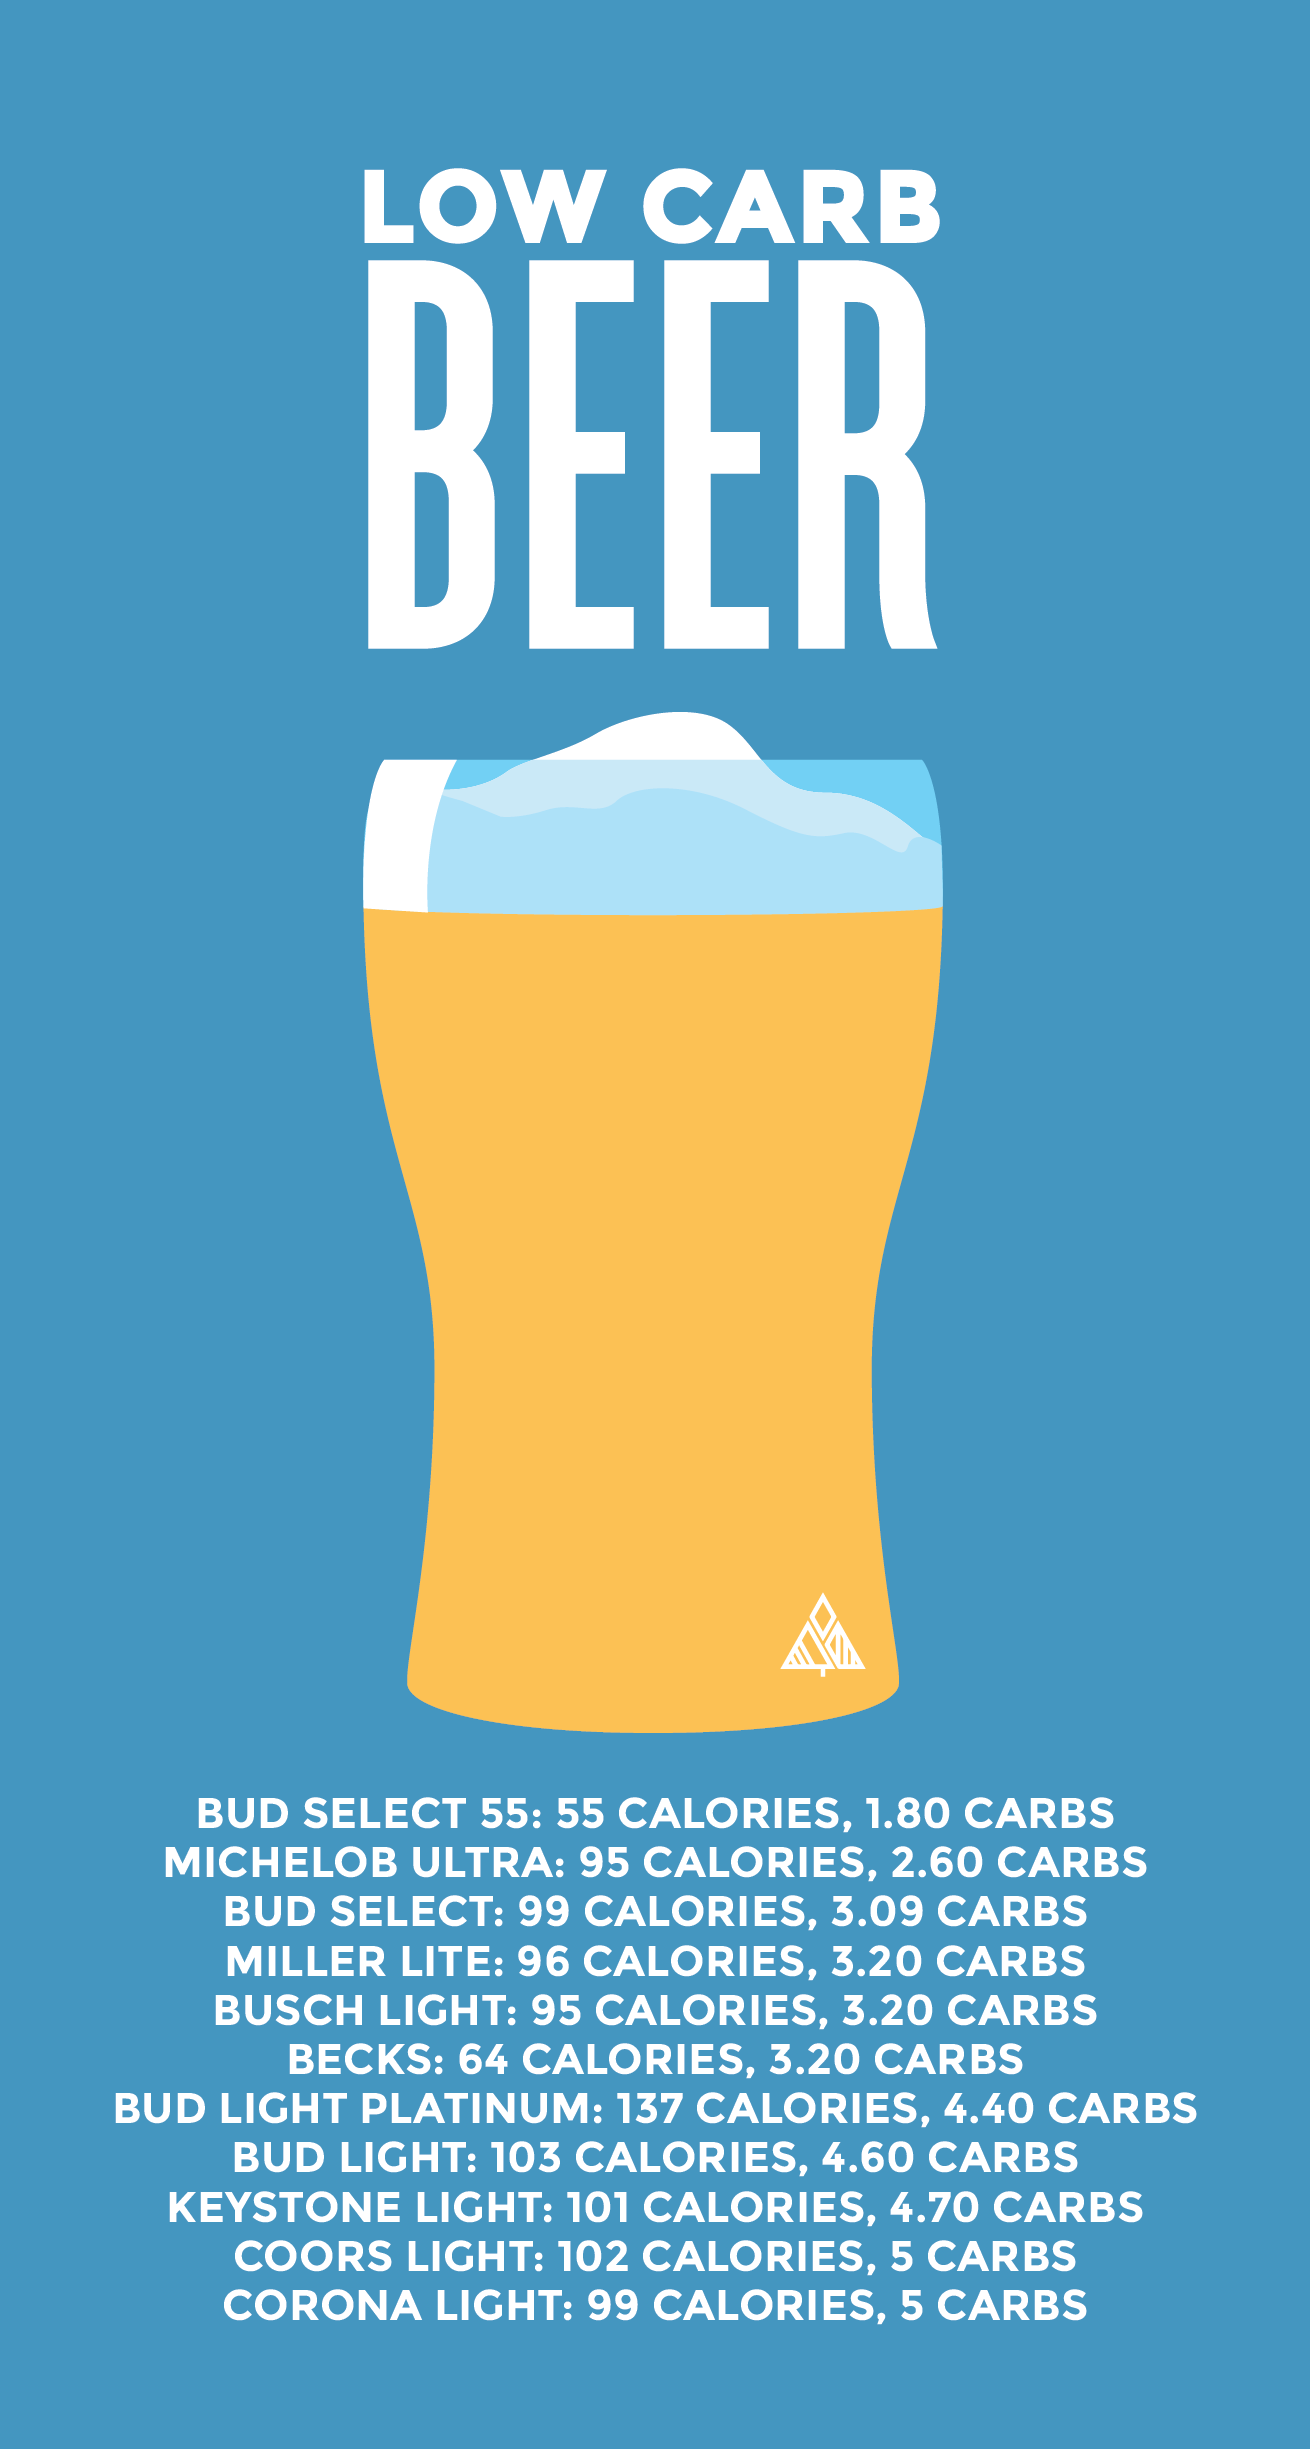 A List Of Low Carb Beer With The Calorie And Count